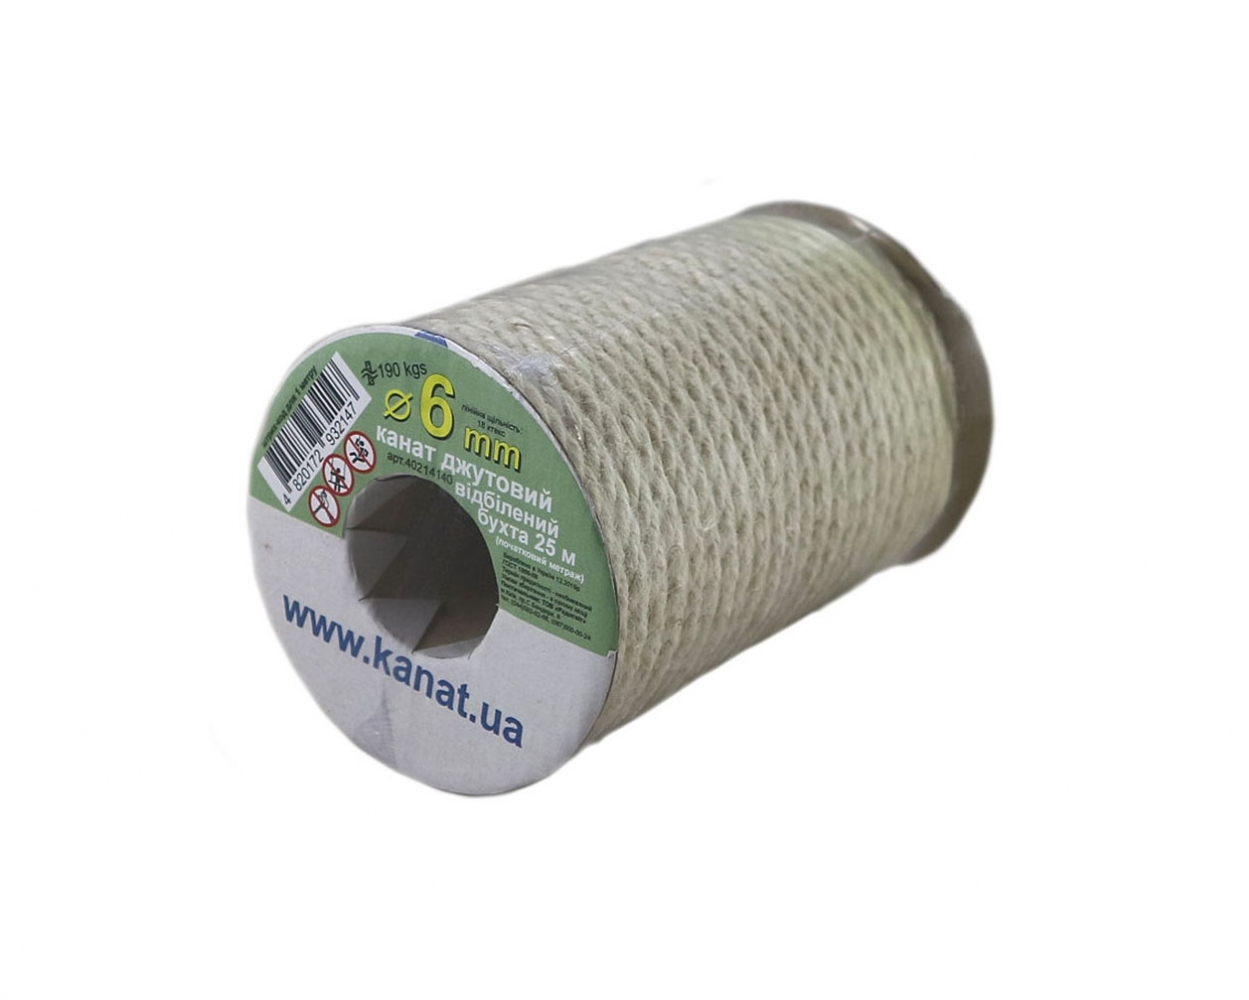 Bleached jute rope, diameter 6mm, coil 25 meters - 2